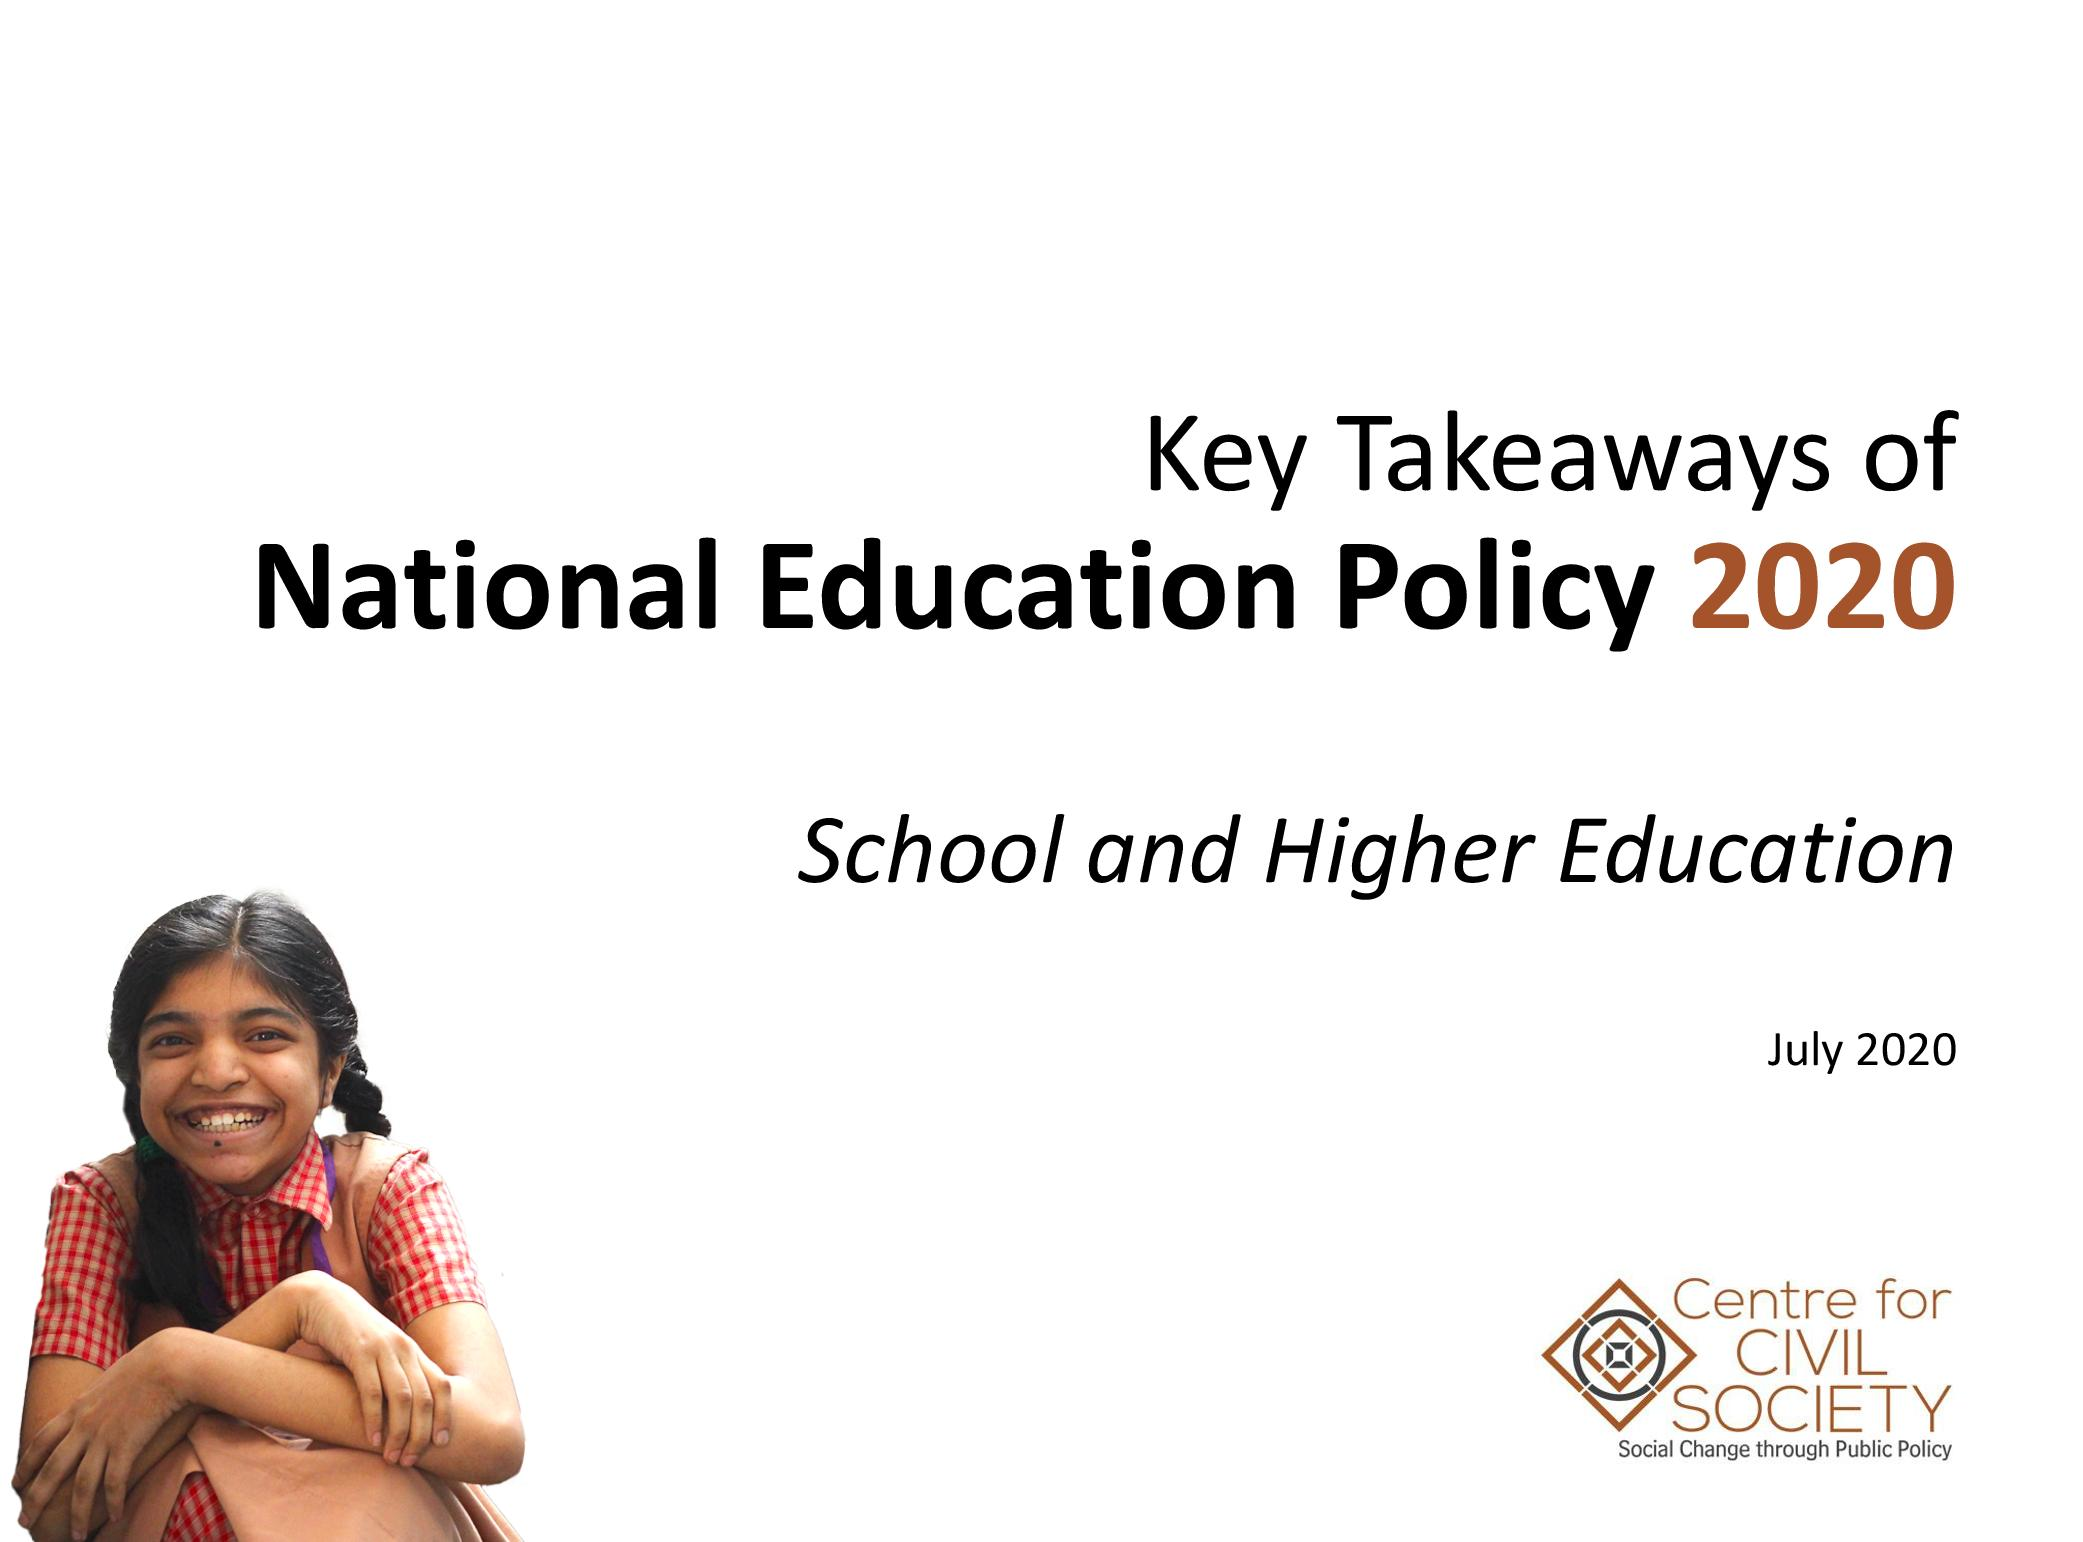 Key takeaways from National Education Policy 2020